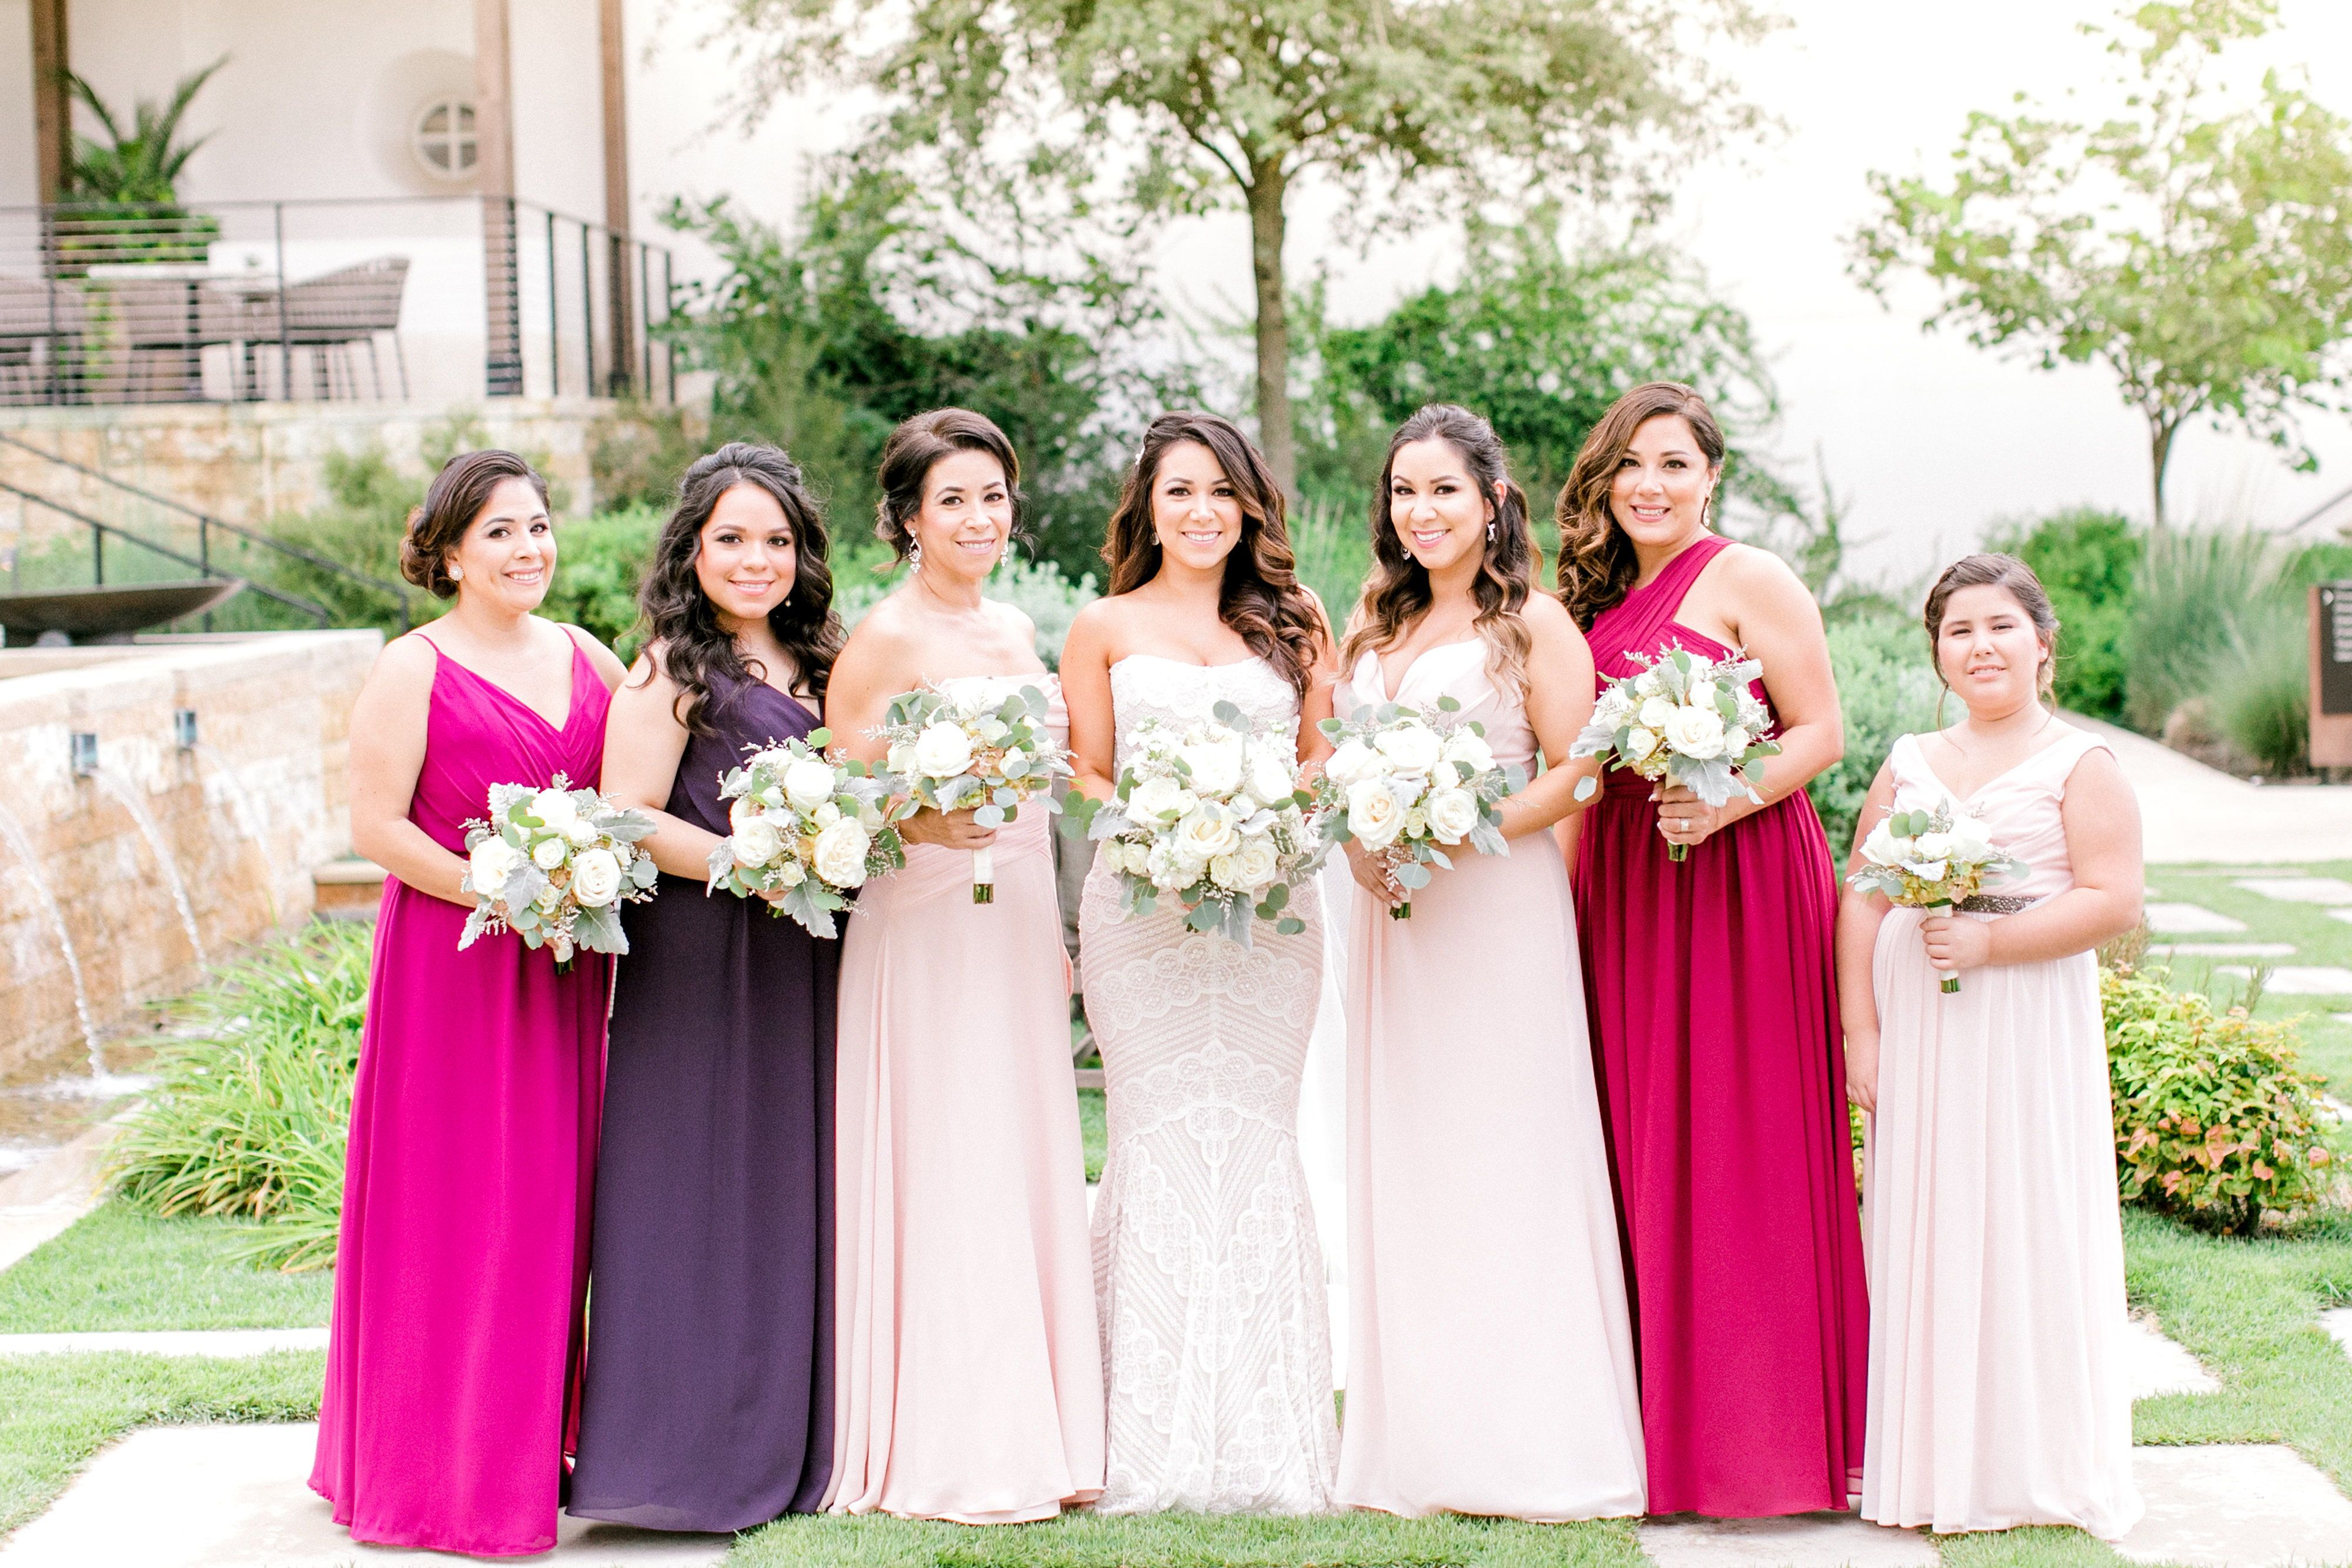 A Garden Style Resort Wedding At La Cantera Resort In San Antonio Tx By Embellished Event Planning San Antonio Weddings Hill Country Wedding Wedding Planner